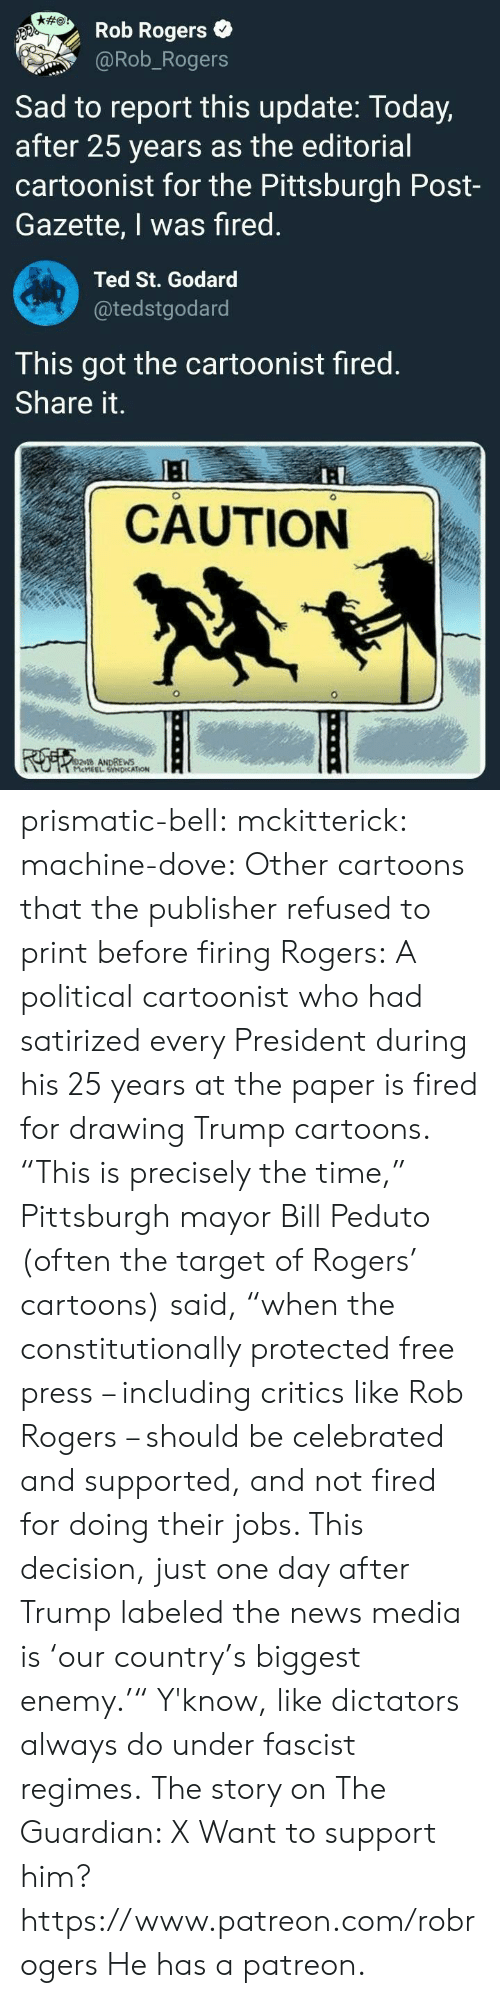 "Firing: Rob Rogers  @Rob_Rogers  Sad to report this update: Today,  after 25 years as the editorial  cartoonist for the Pittsburgh Post-  Gazette, I was fired  Ted St. Godard  @tedstgodard  This got the cartoonist fired  Share it.  I:  CAUTION  ANDREWS prismatic-bell: mckitterick:  machine-dove:  Other cartoons that the publisher refused to print before firing Rogers:   A political cartoonist who had satirized every President during his 25 years at the paper is fired for drawing Trump cartoons.  ""This is precisely the time,"" Pittsburgh mayor Bill Peduto (often the target of Rogers' cartoons) said, ""when the constitutionally protected free press – including critics like Rob Rogers – should be celebrated and supported, and not fired for doing their jobs. This decision, just one day after Trump labeled the news media is 'our country's biggest enemy.'"" Y'know, like dictators always do under fascist regimes. The story on The Guardian: X  Want to support him?  https://www.patreon.com/robrogers  He has a patreon."